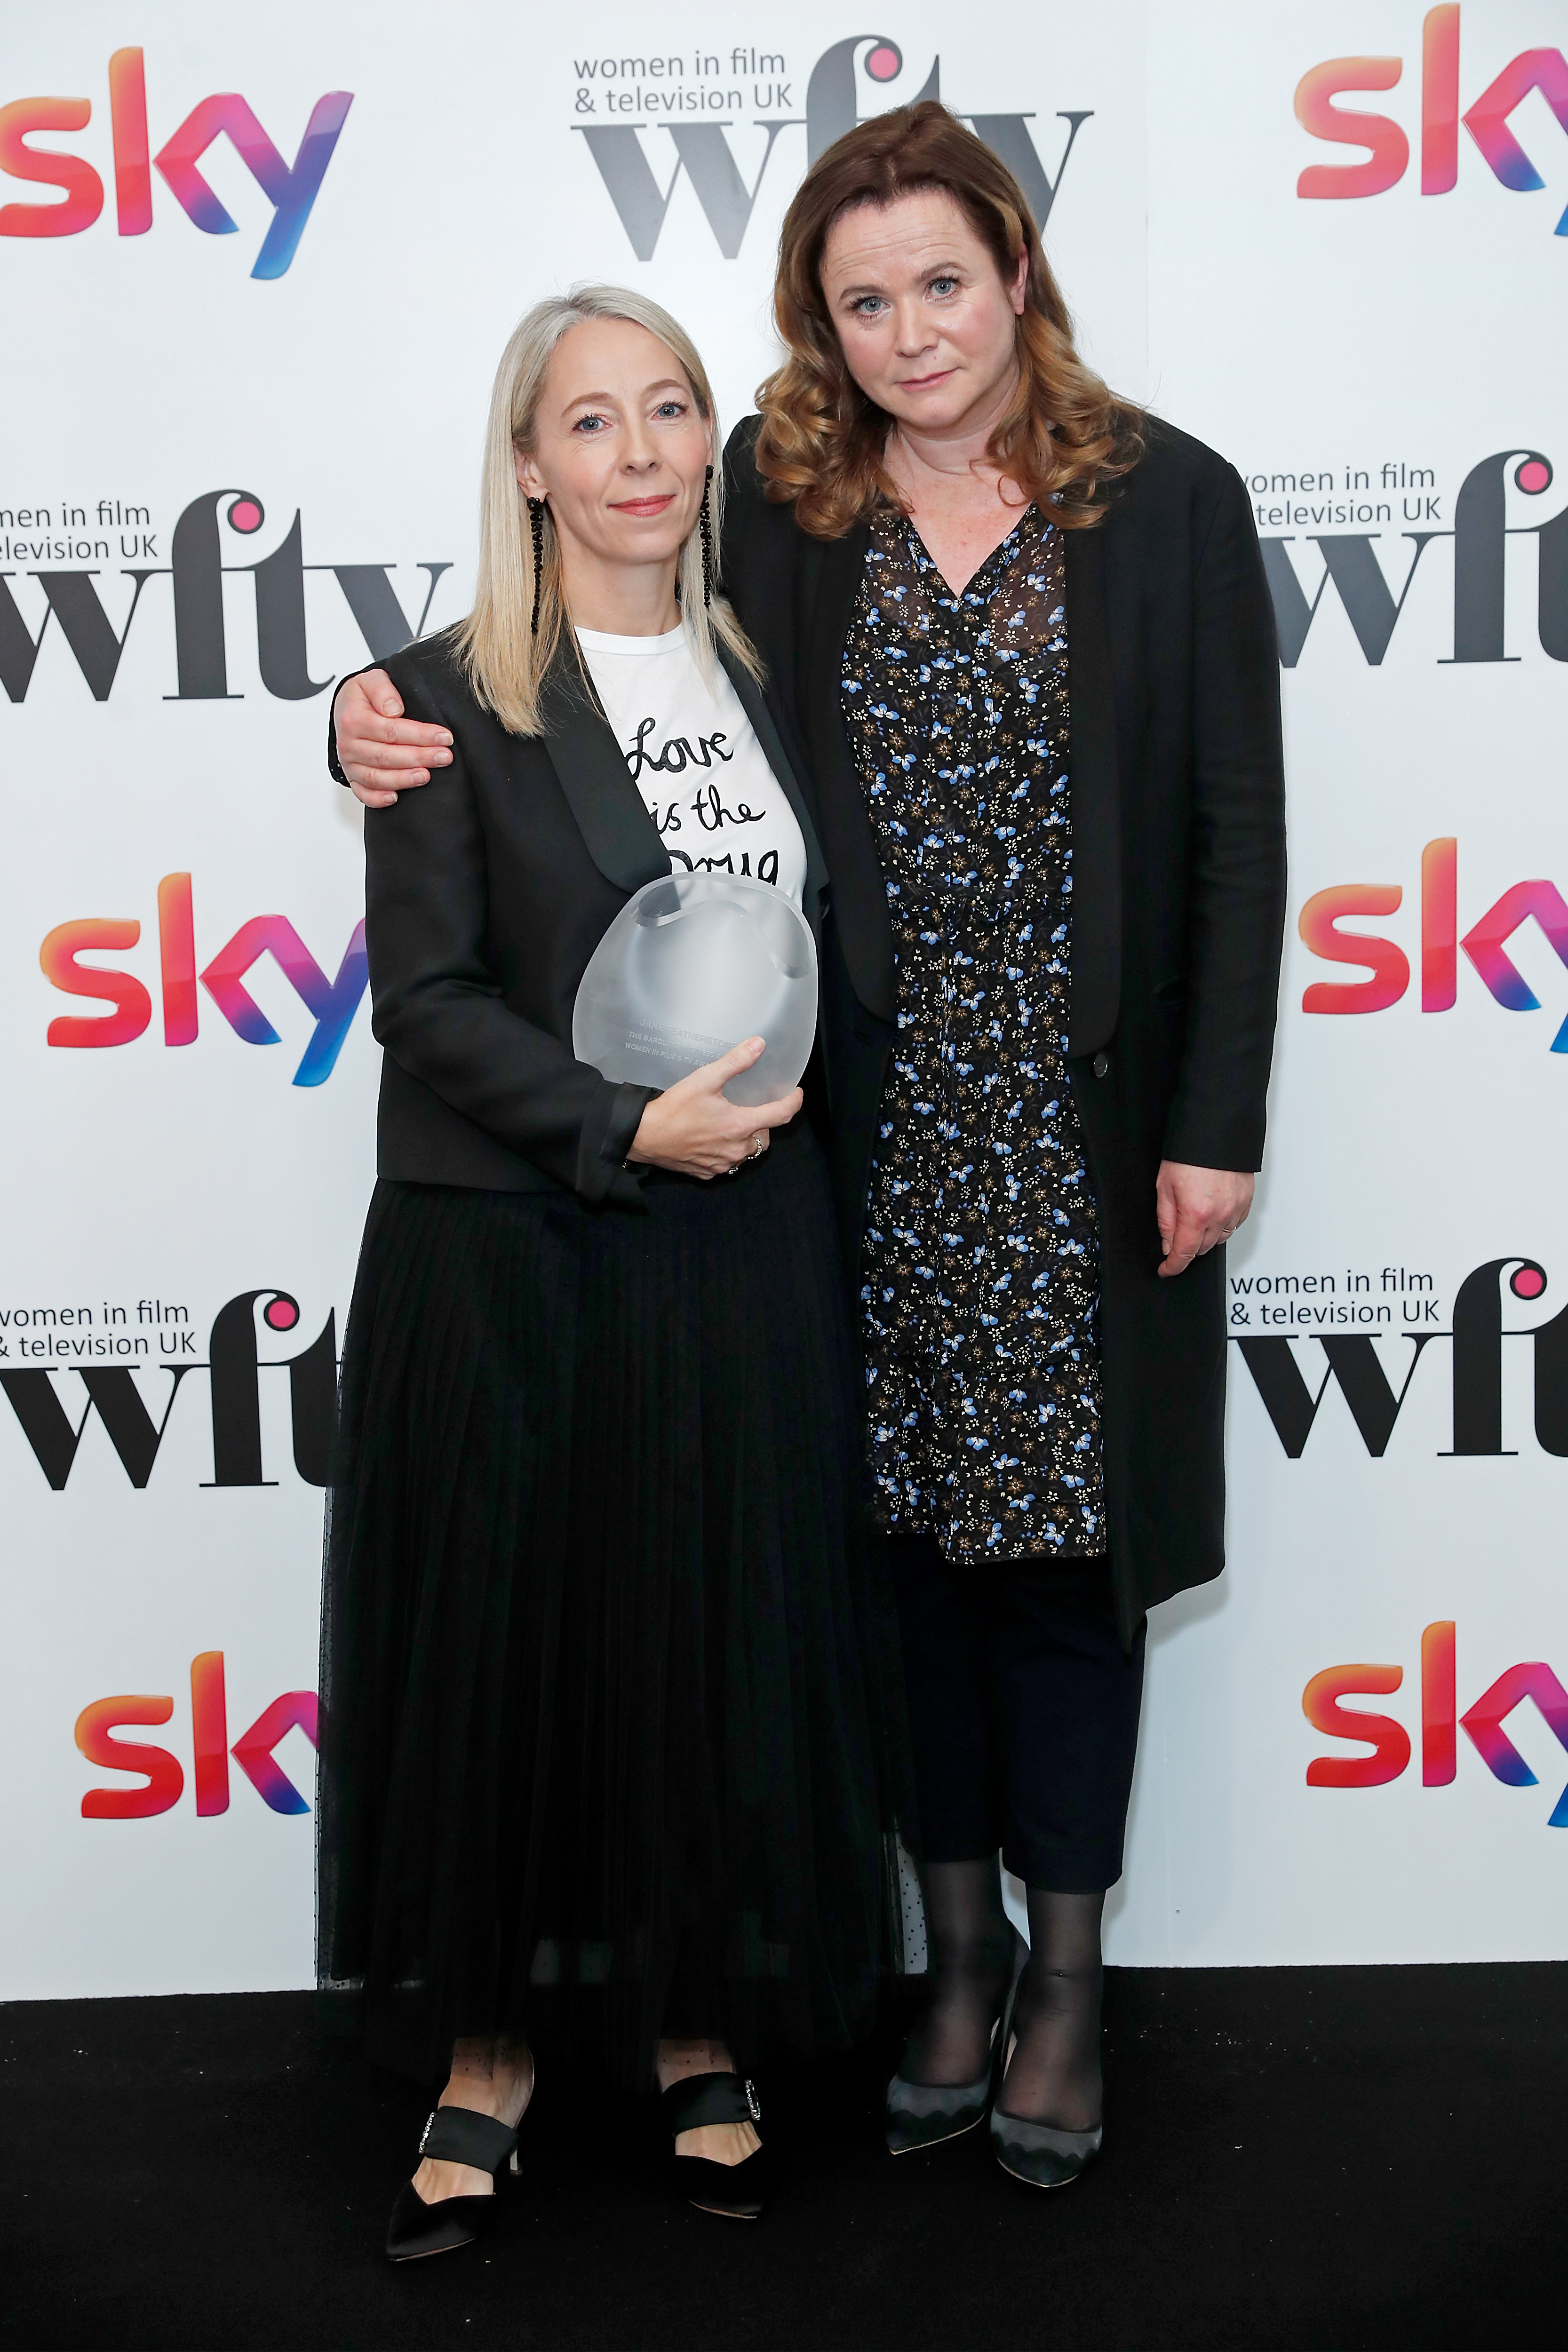 LONDON, ENGLAND - DECEMBER 06: Jane Featherston winner of the Barclays Business Award presented by Emily Watson in the winners room at the Women in Film and TV Awards 2019 at Hilton Park Lane on December 06, 2019 in London, England. (Photo by David M. Benett/Dave Benett/Getty Images for Women in Film and TV)